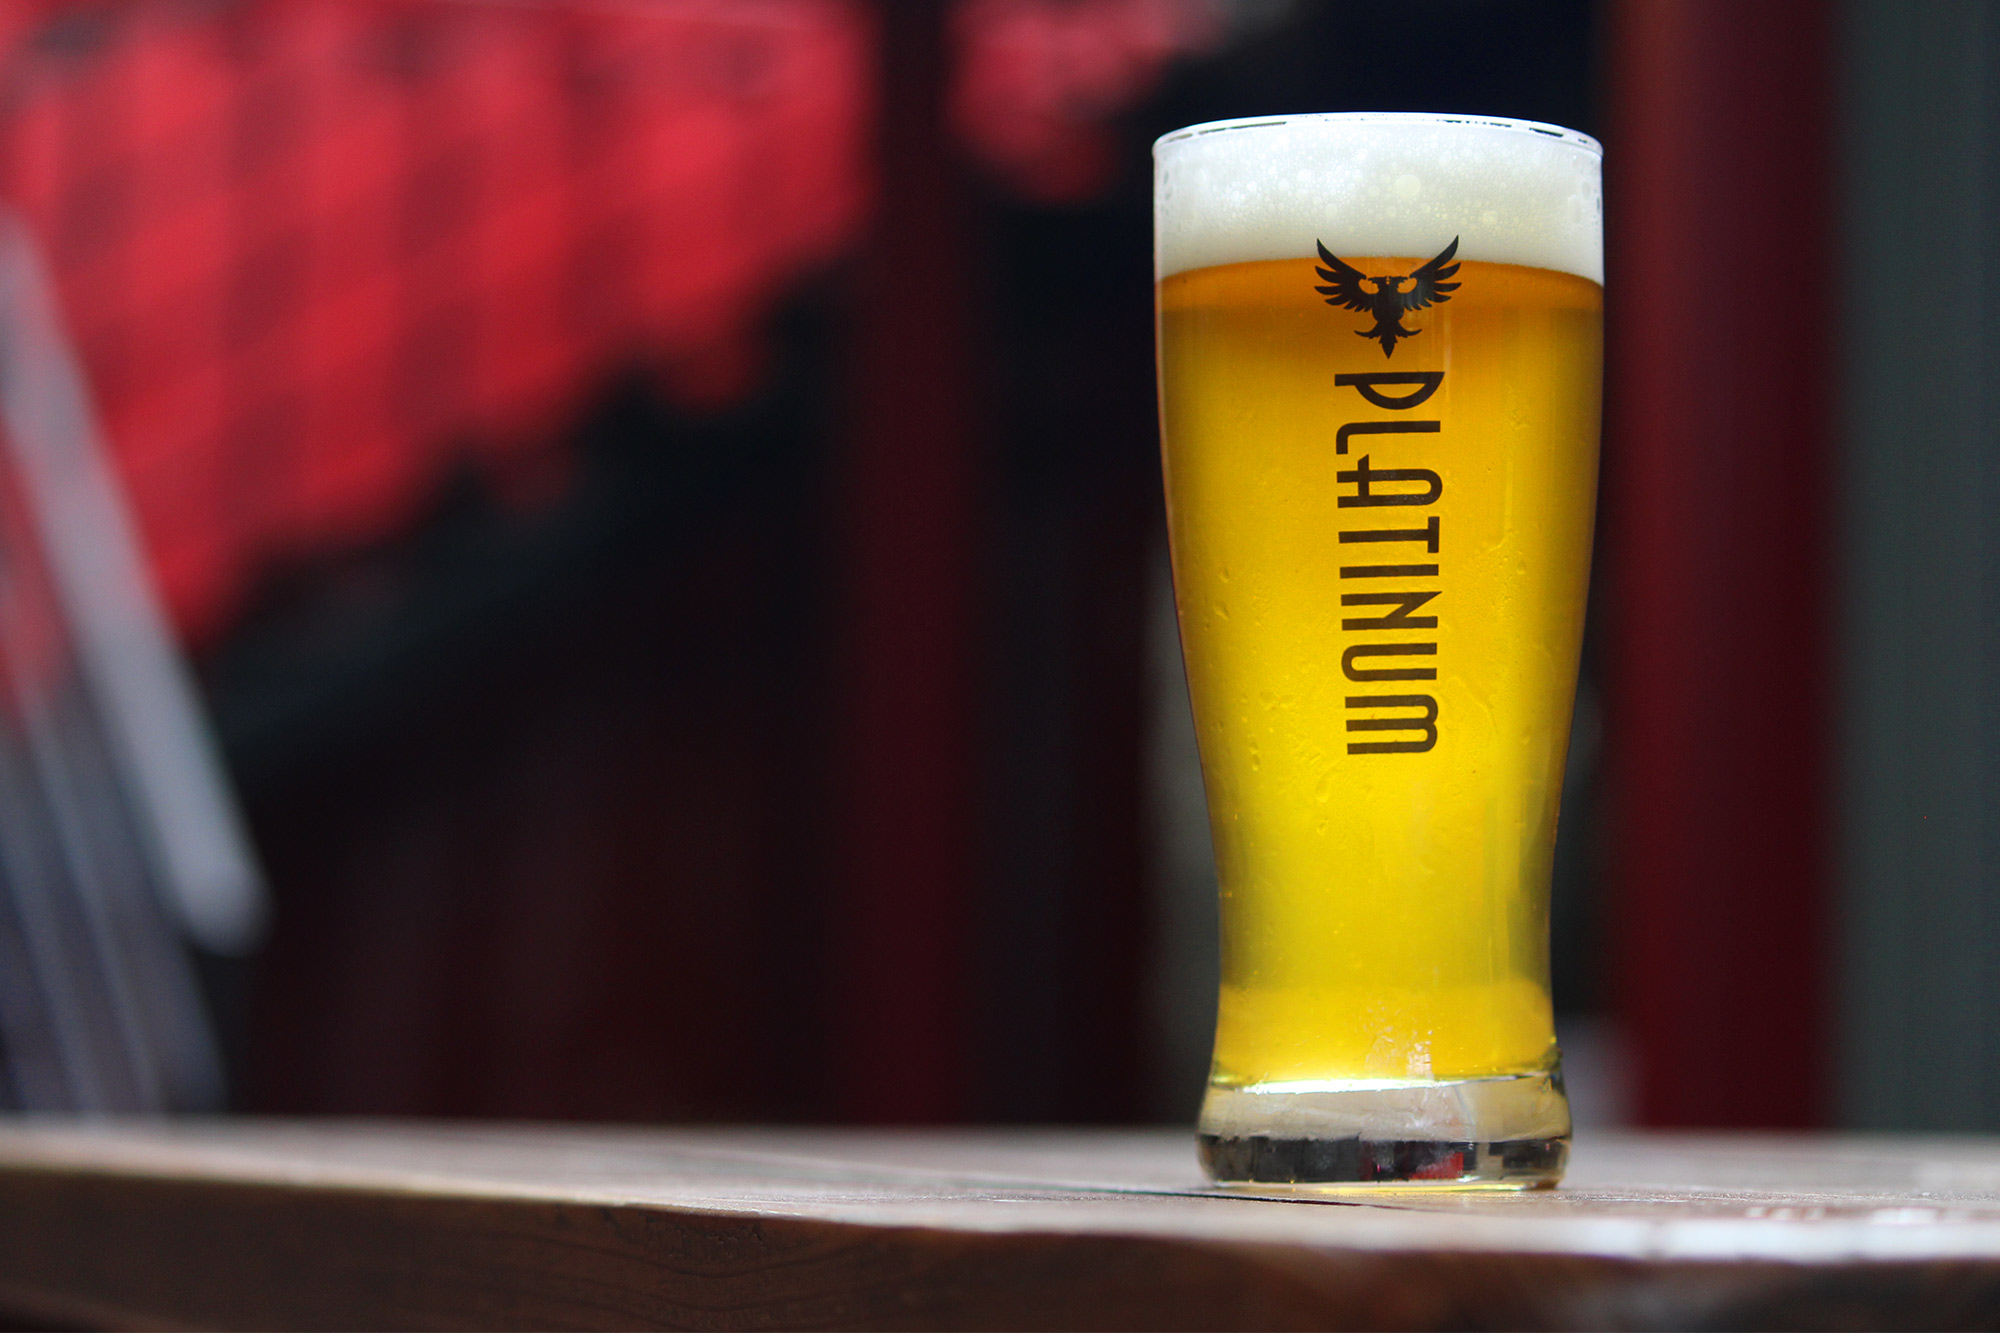 Platinum Beers Debuts New Product This Summer